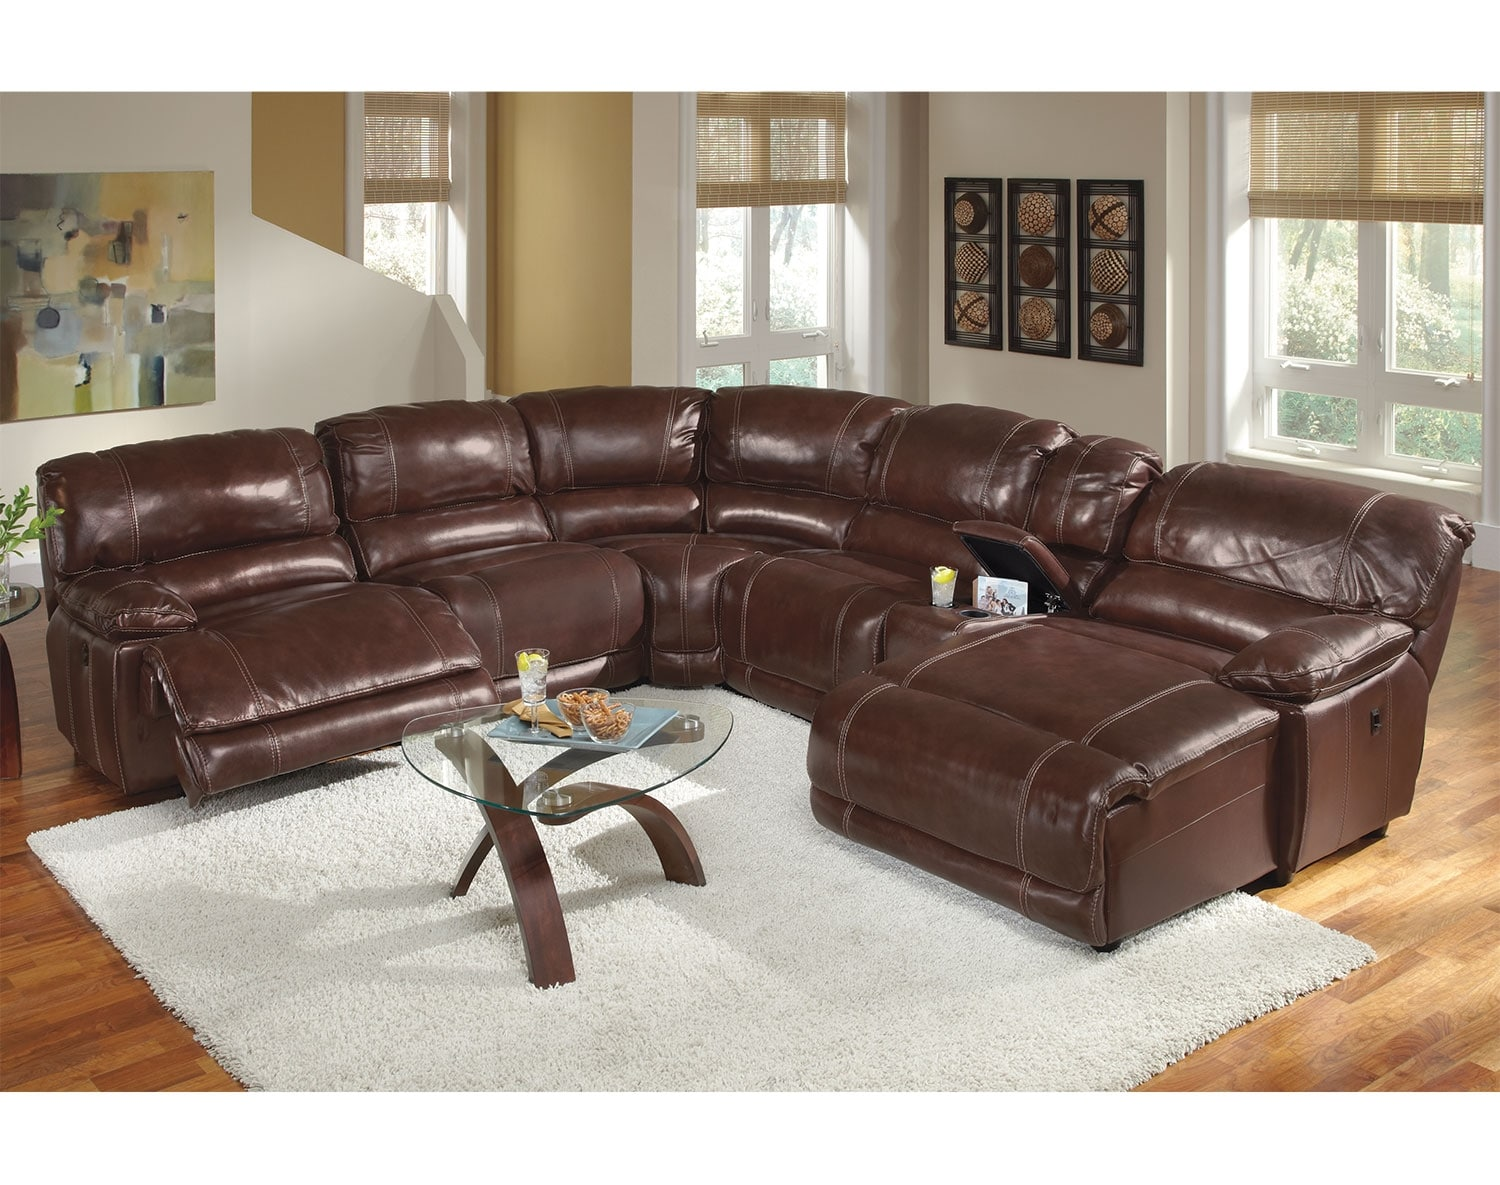 Living Room Furniture - The Clinton Burgundy Collection - 6 Pc. Power Reclining Sectional